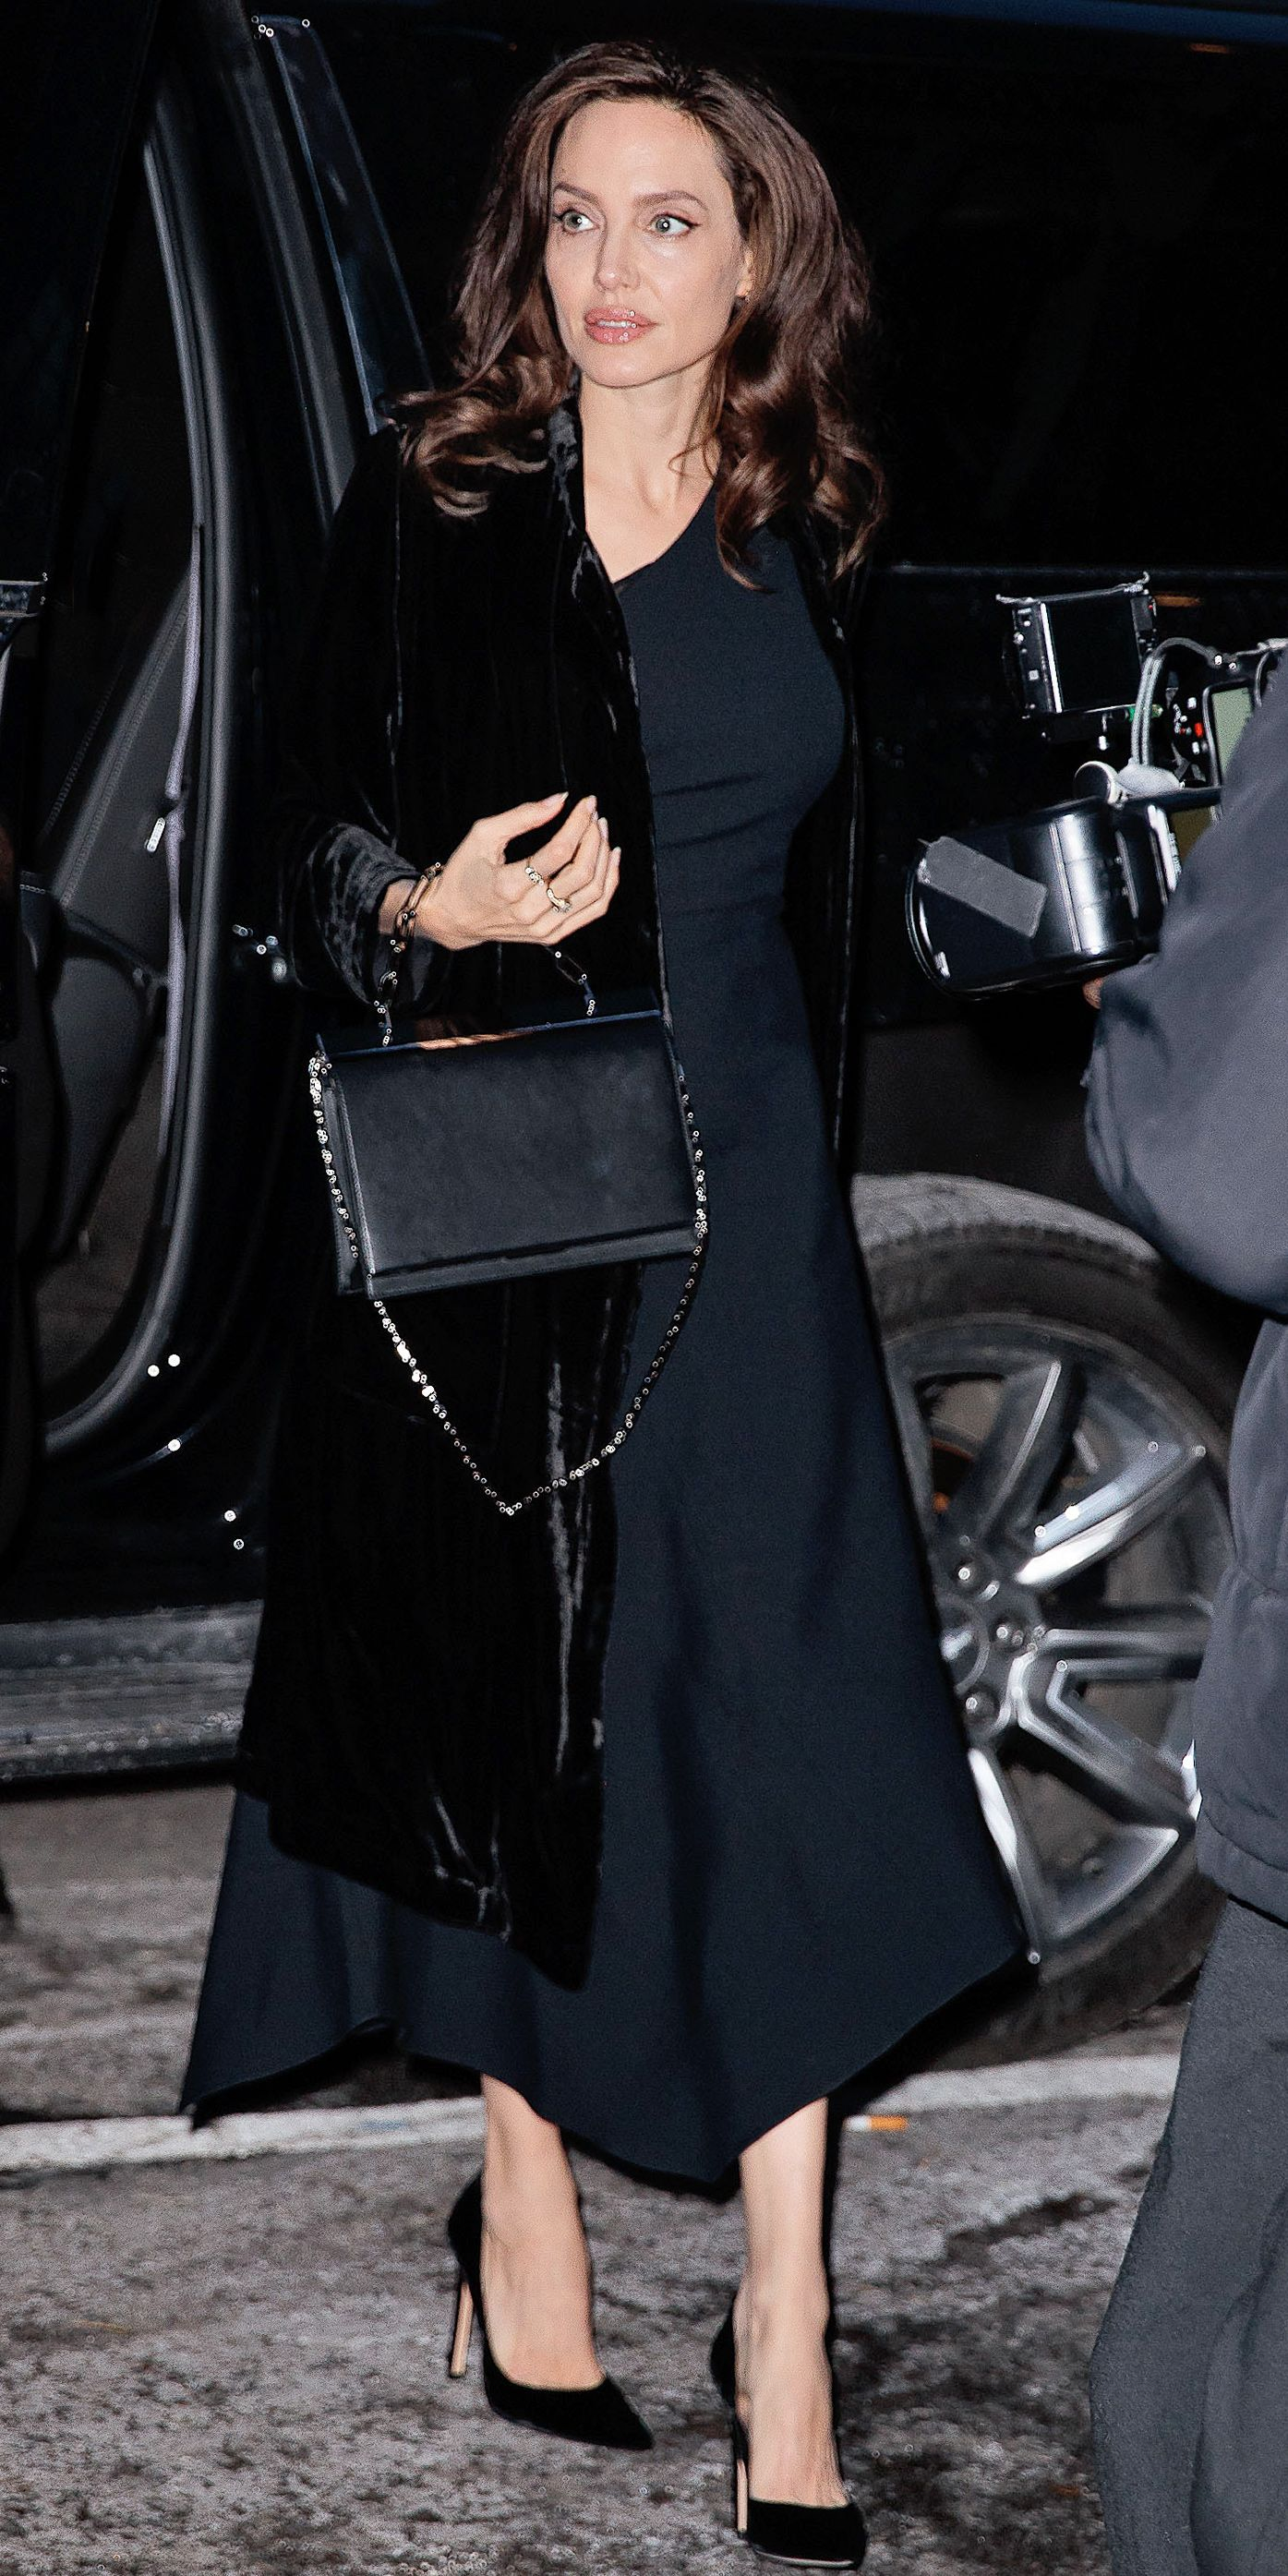 Fashion style Jolie angelina look of the day for woman